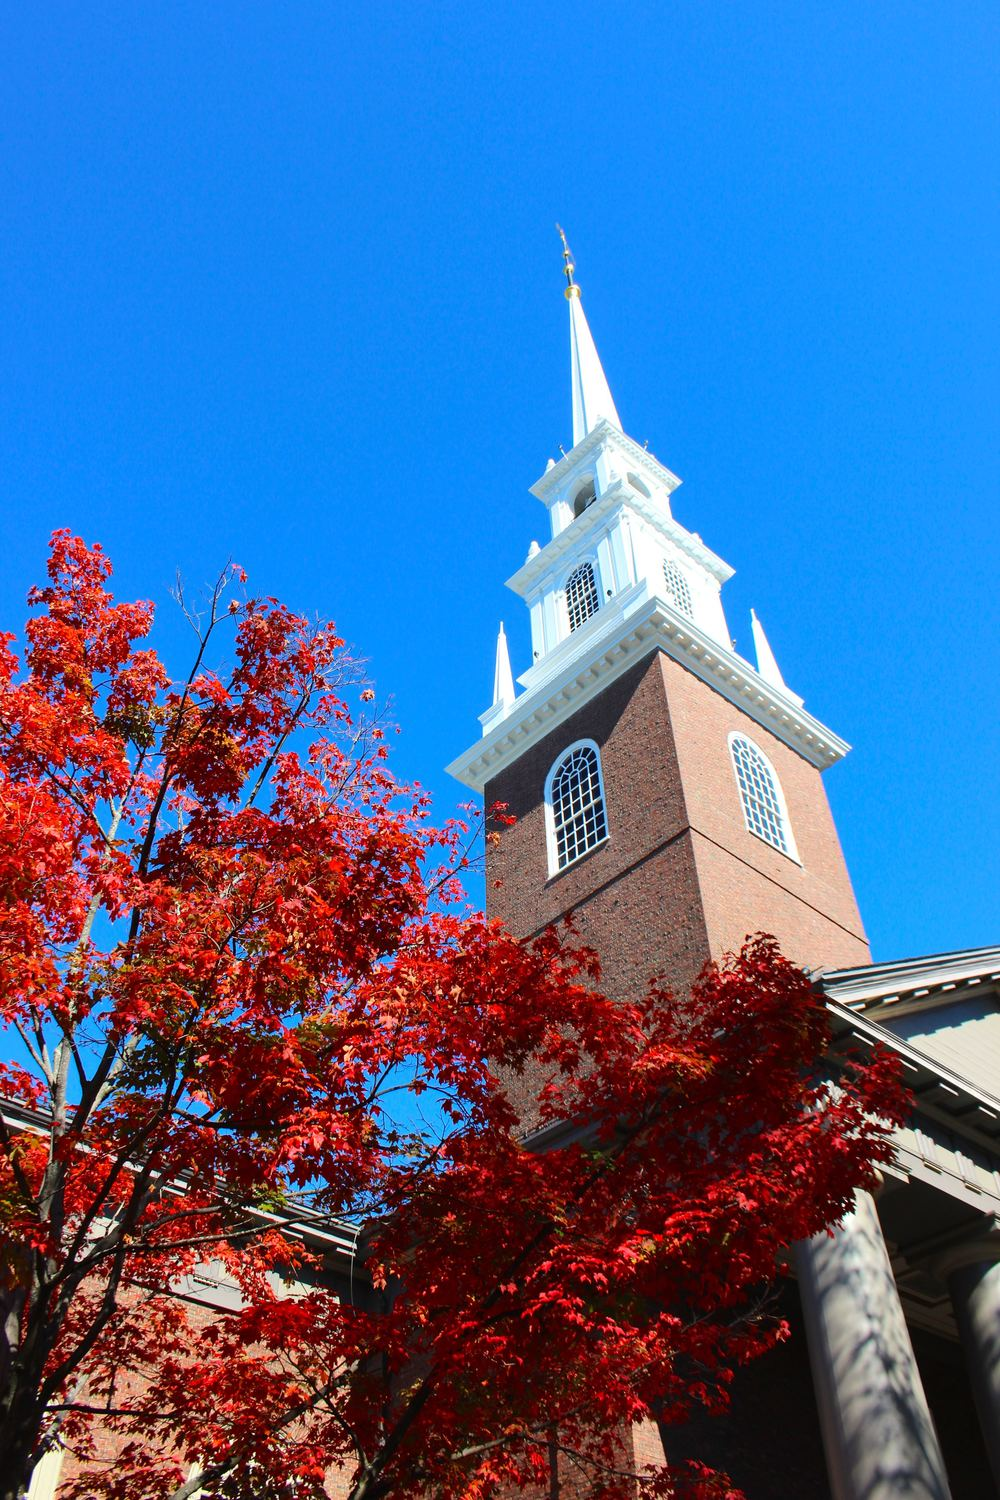 The historic Harvard Quad awash with Autumn colour.